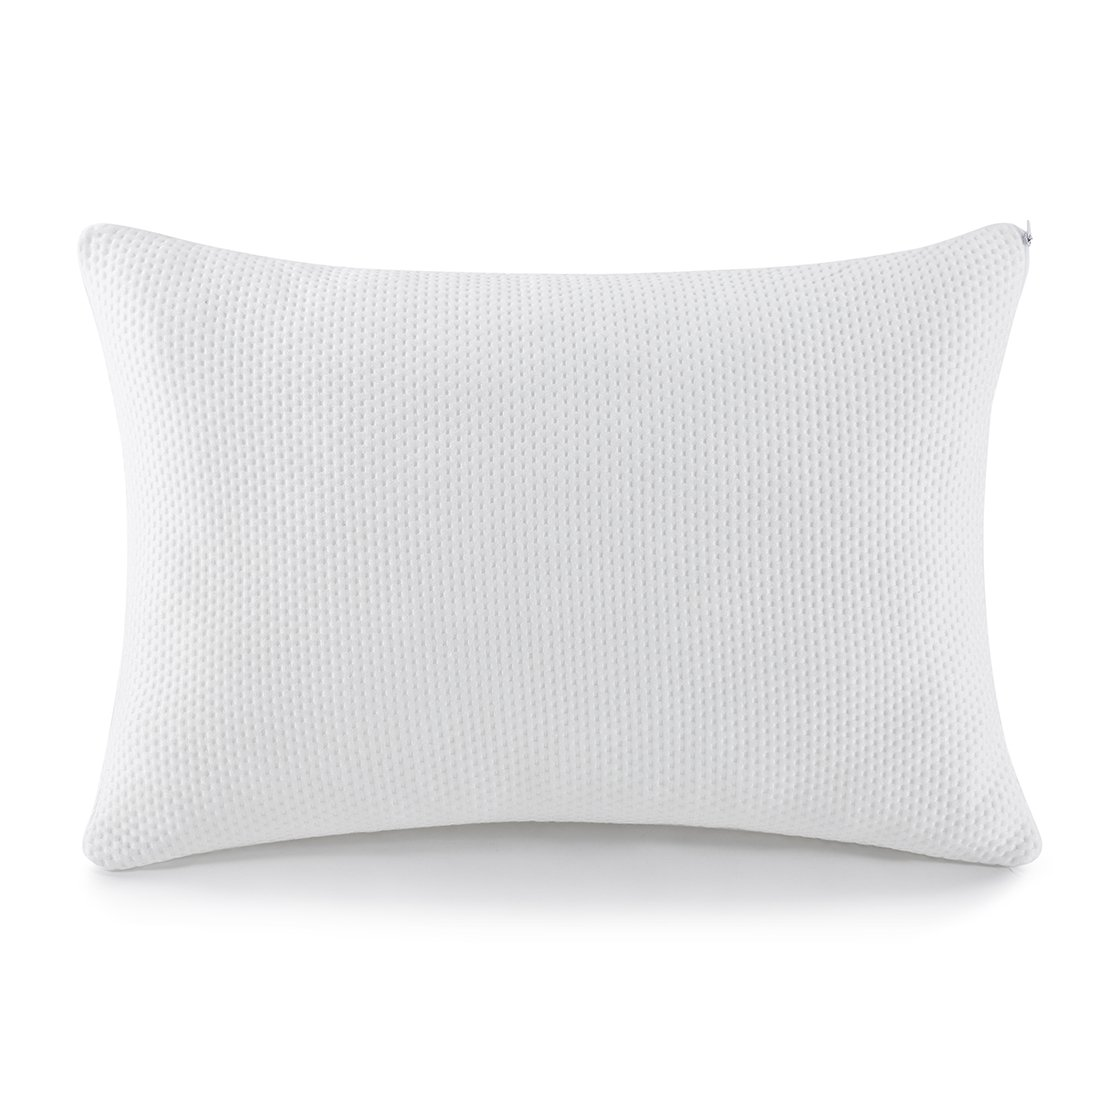 Oaskys Memory Foam Pillow Queen Size Cooling with Removable Washable Bamboo Bed Pillow Cover,Hypoallergenic,Dust Mite Resistant and Luxury for Hotel